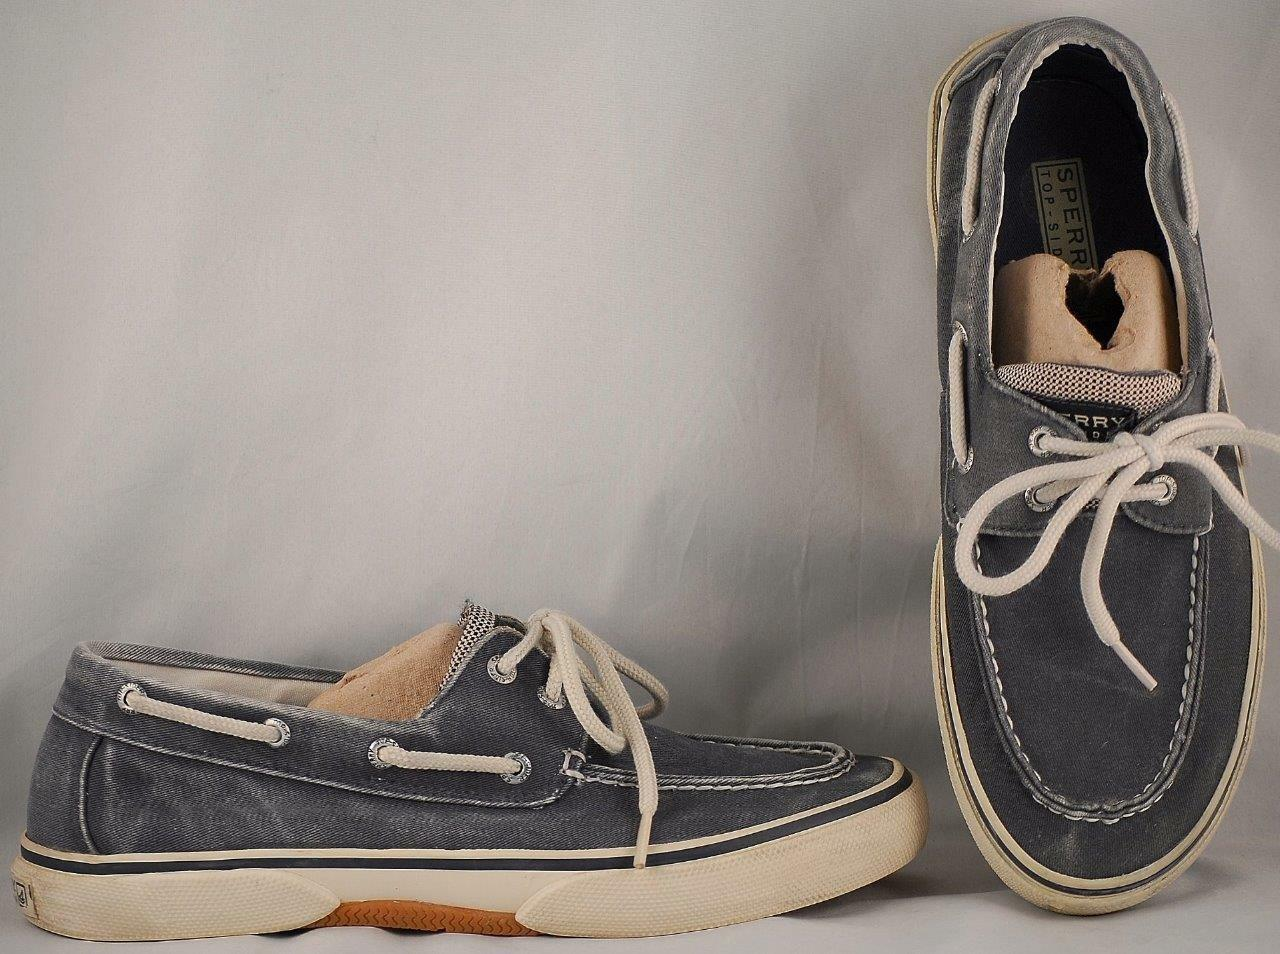 Men's Sperry Top-Sider Weathered Navy Canvas Boat Shoes US 9